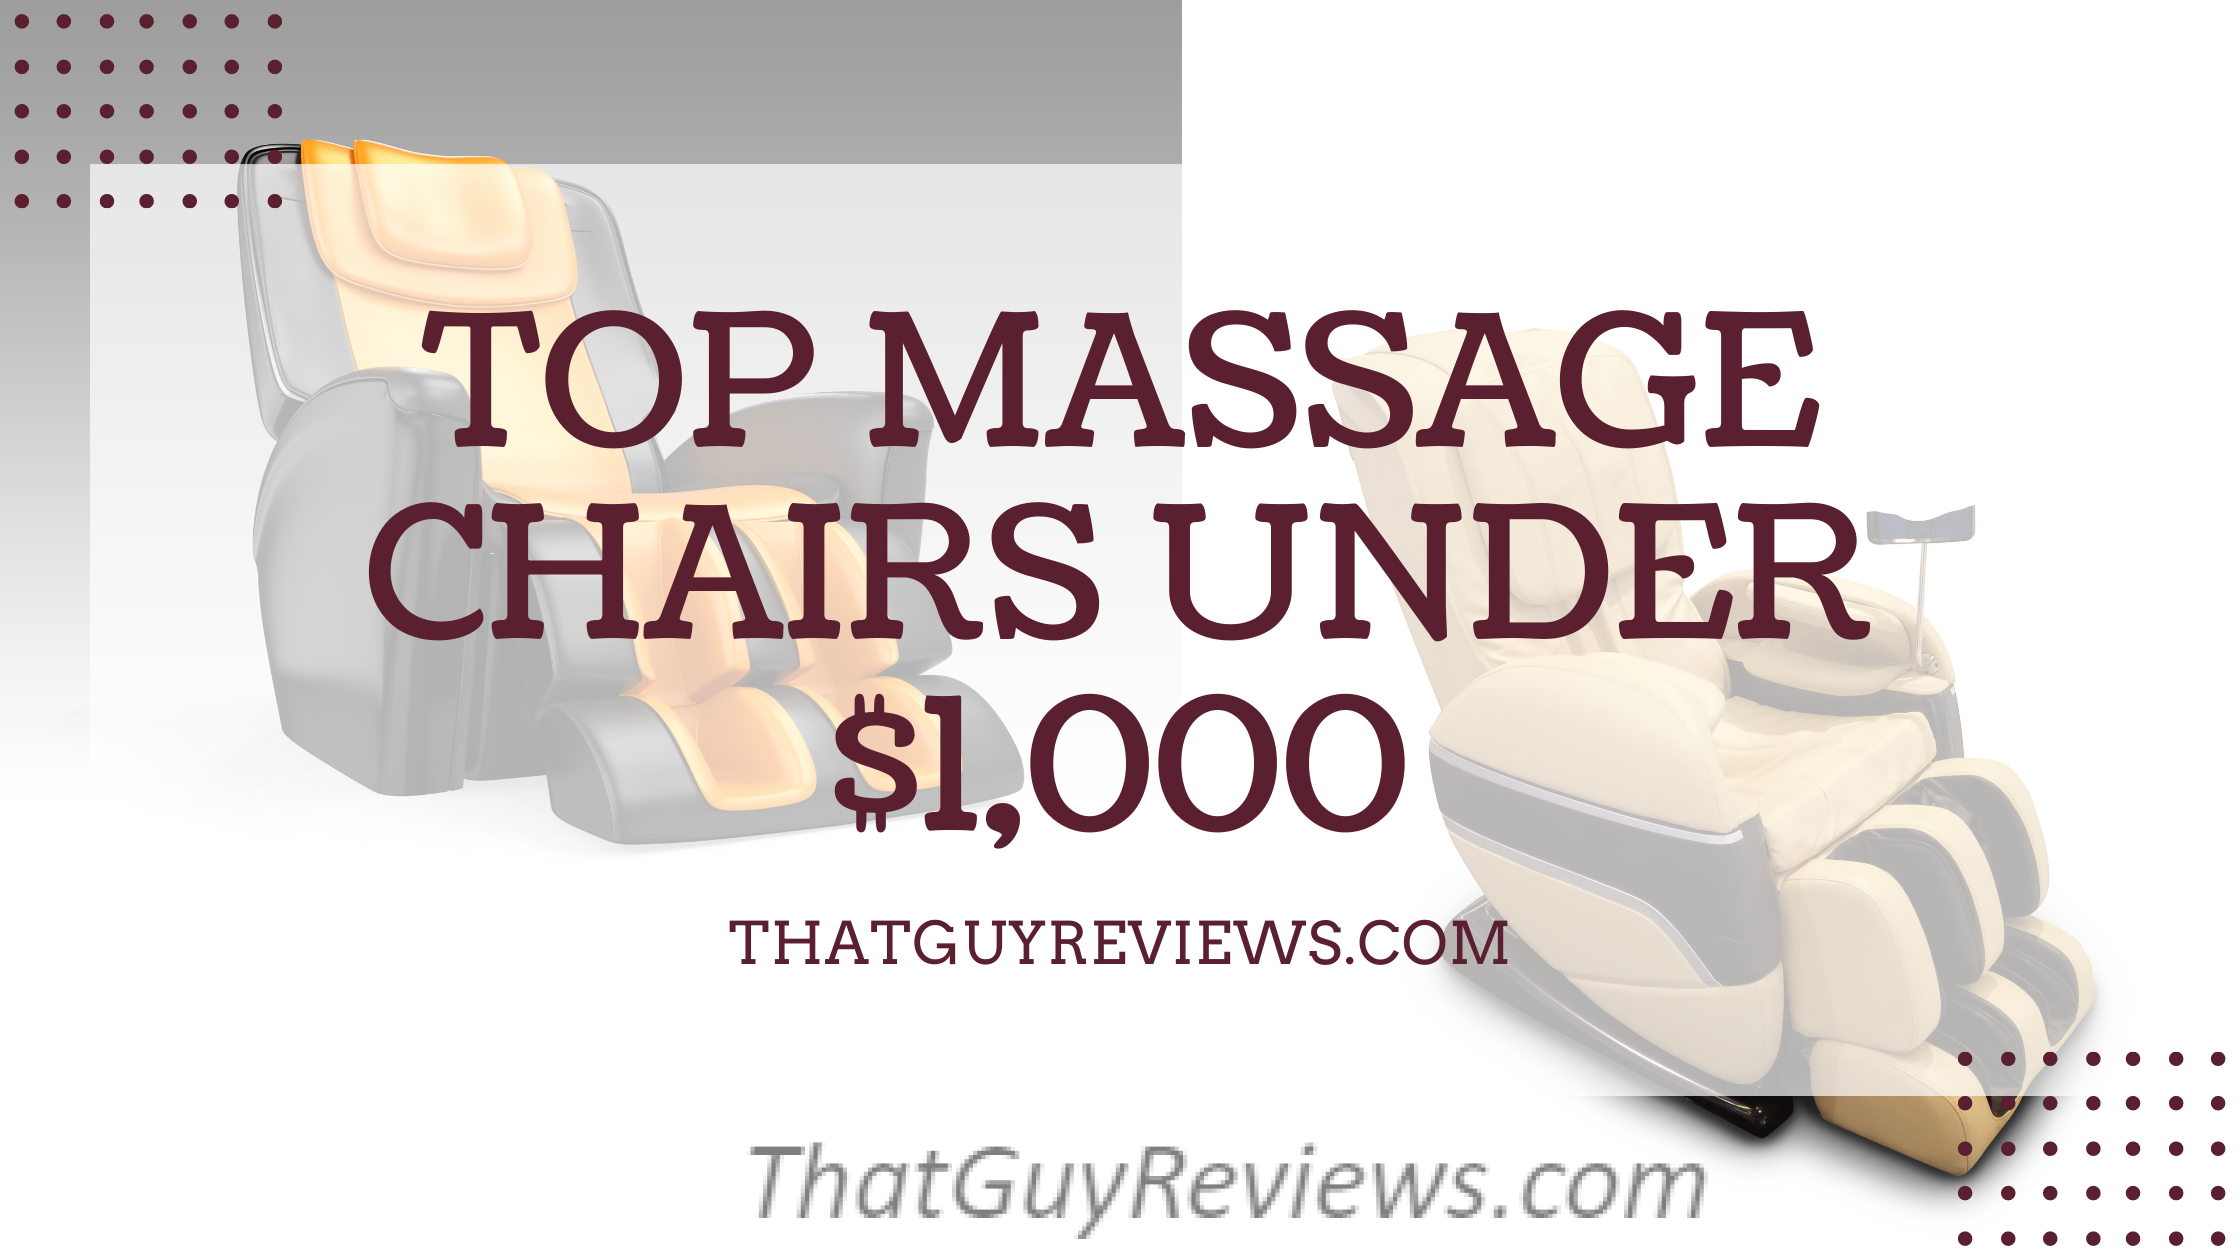 Best Massage Chairs Under $1,000 in 2020